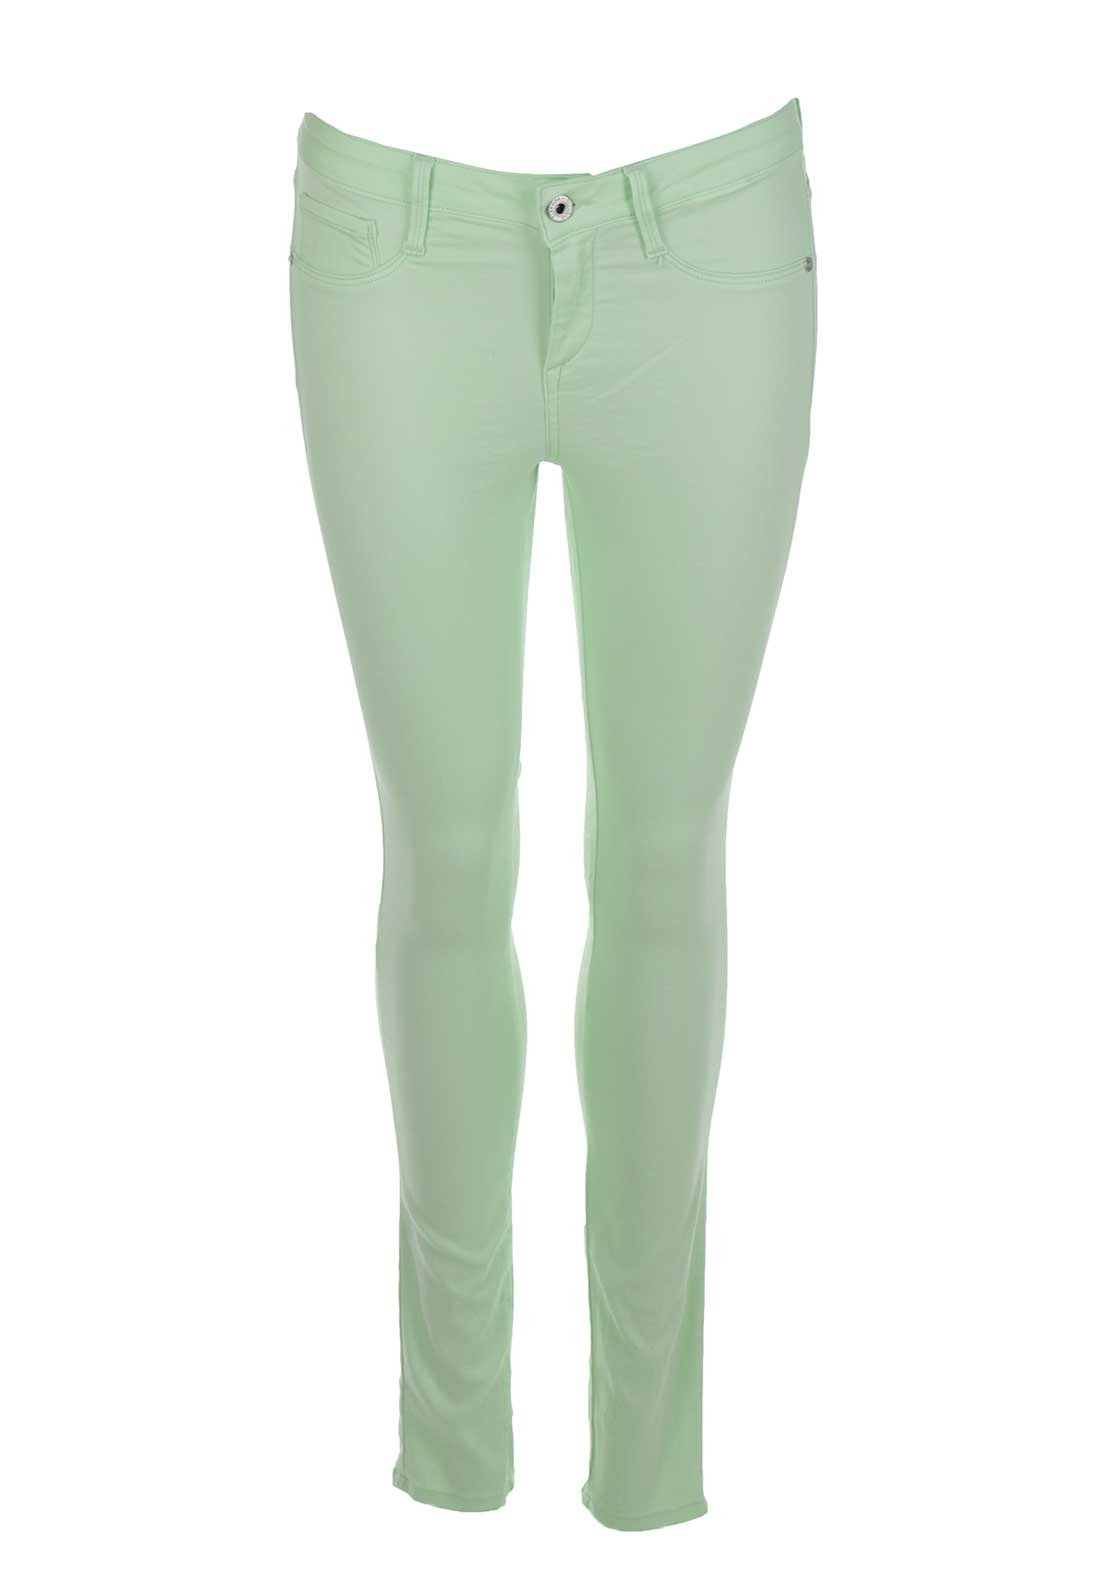 Tiffosi Womens One Size Fits All Original Skinny Jeans, Mint Green